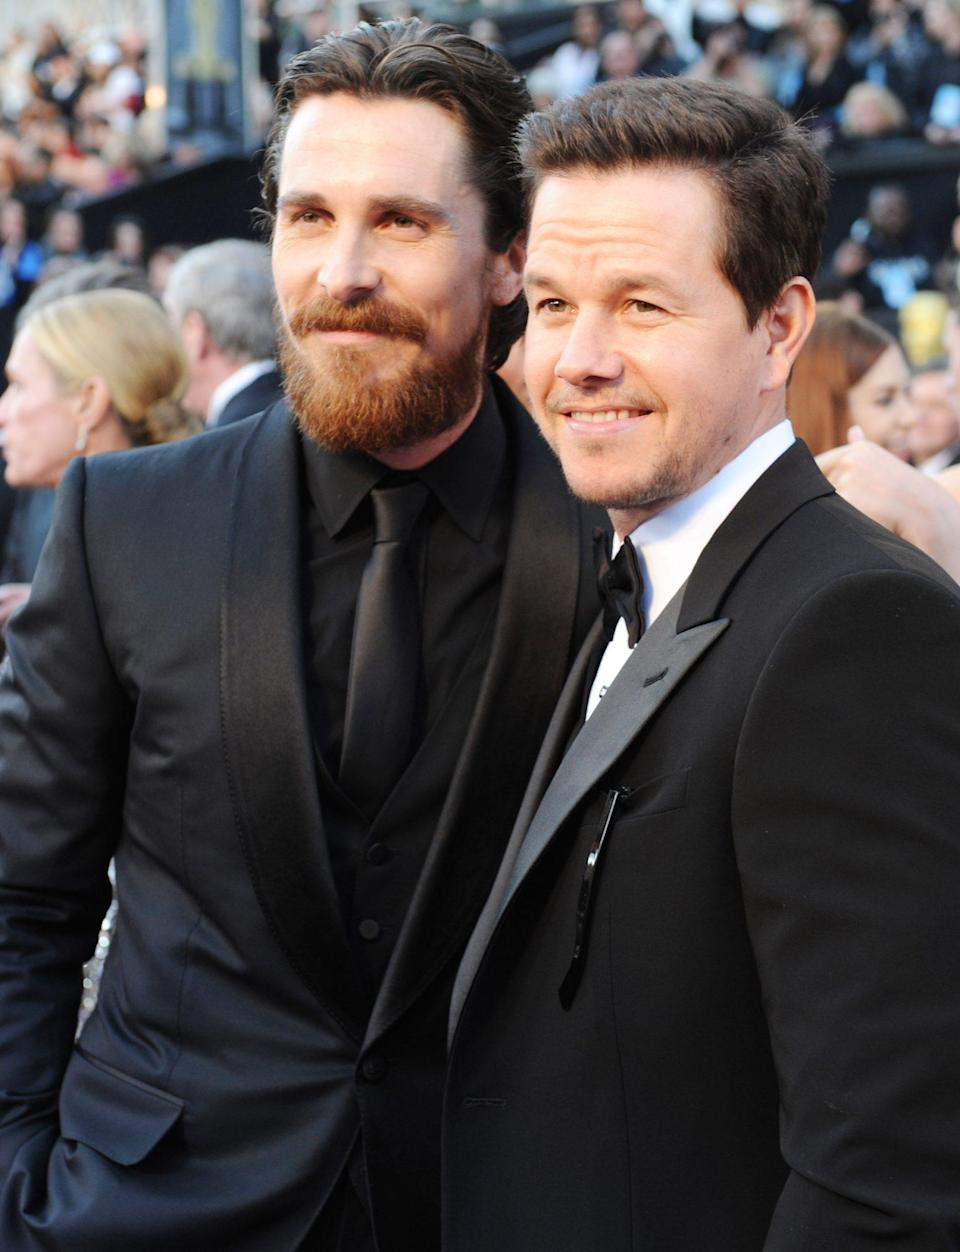 <p>Christian Bale and Mark Wahlberg, who both starred in the Oscar nominated film <em>The Fighter</em>, posed for a photo before the ceremony. </p>